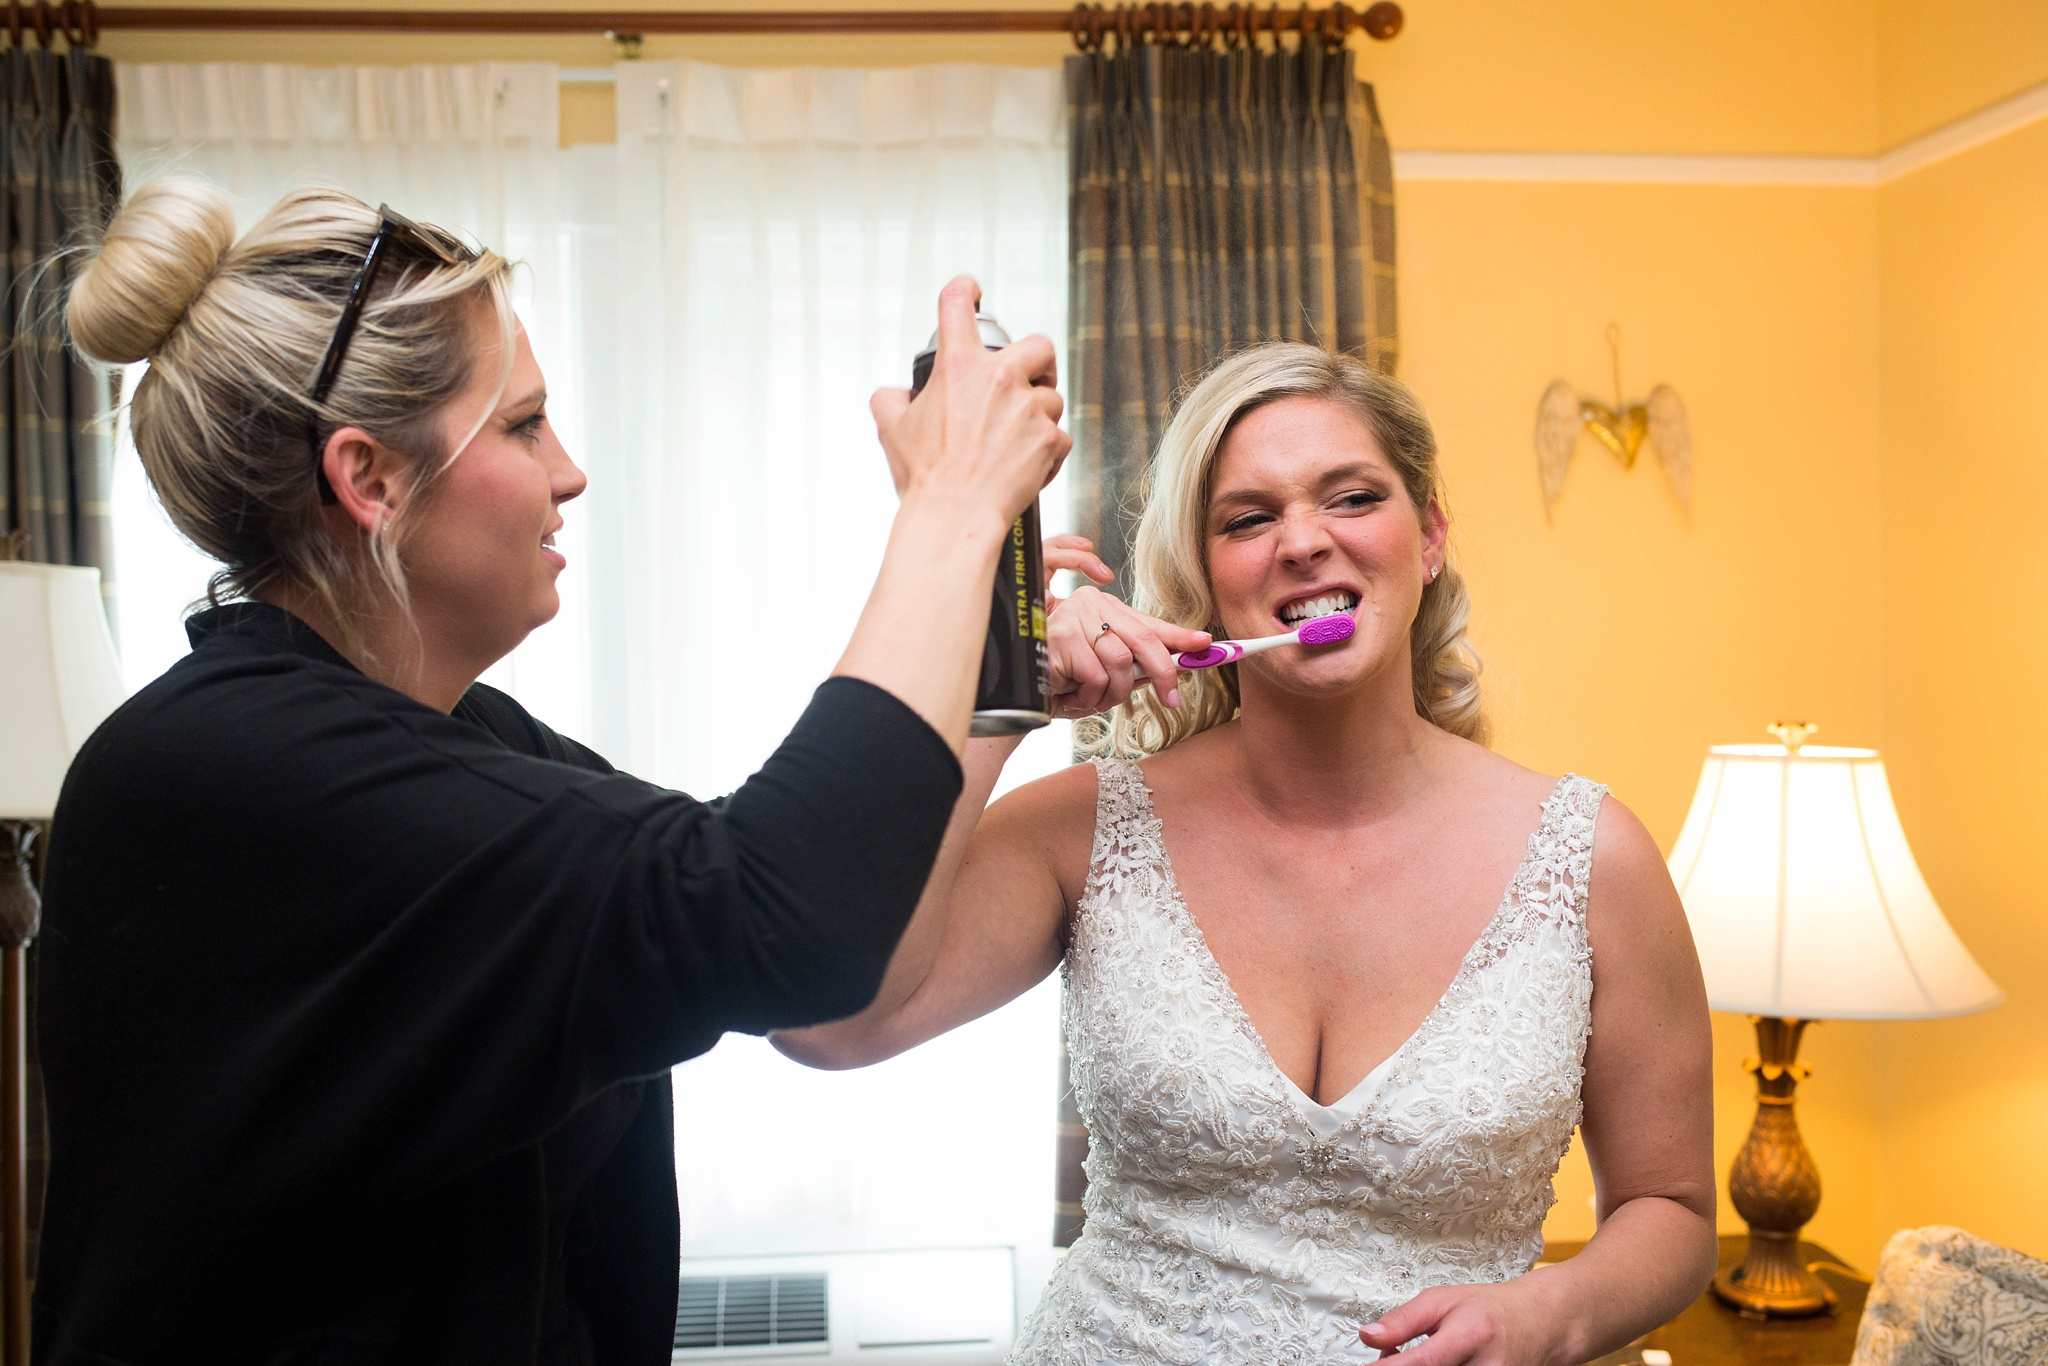 bride brushing her teeth